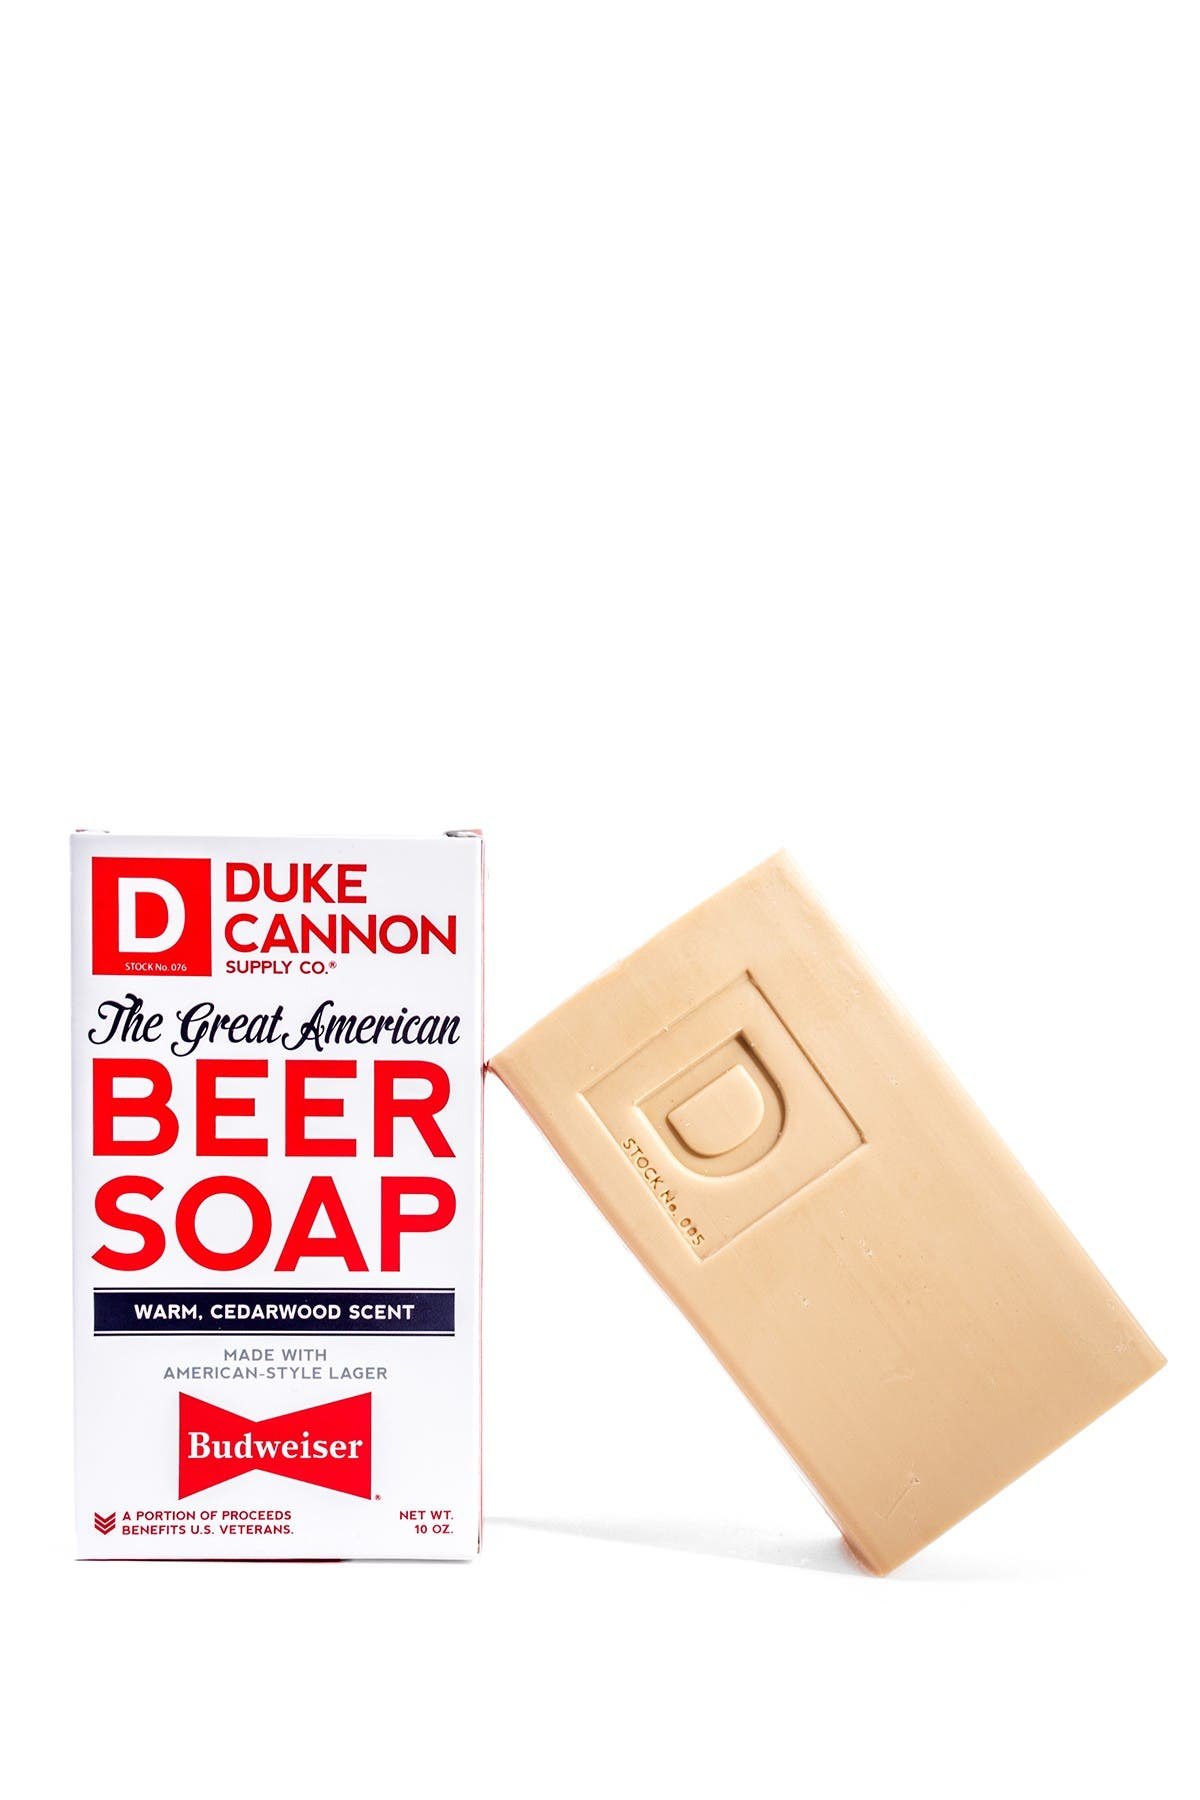 Image of DUKE CANNON Great American Beer Soap - Made with Budweiser